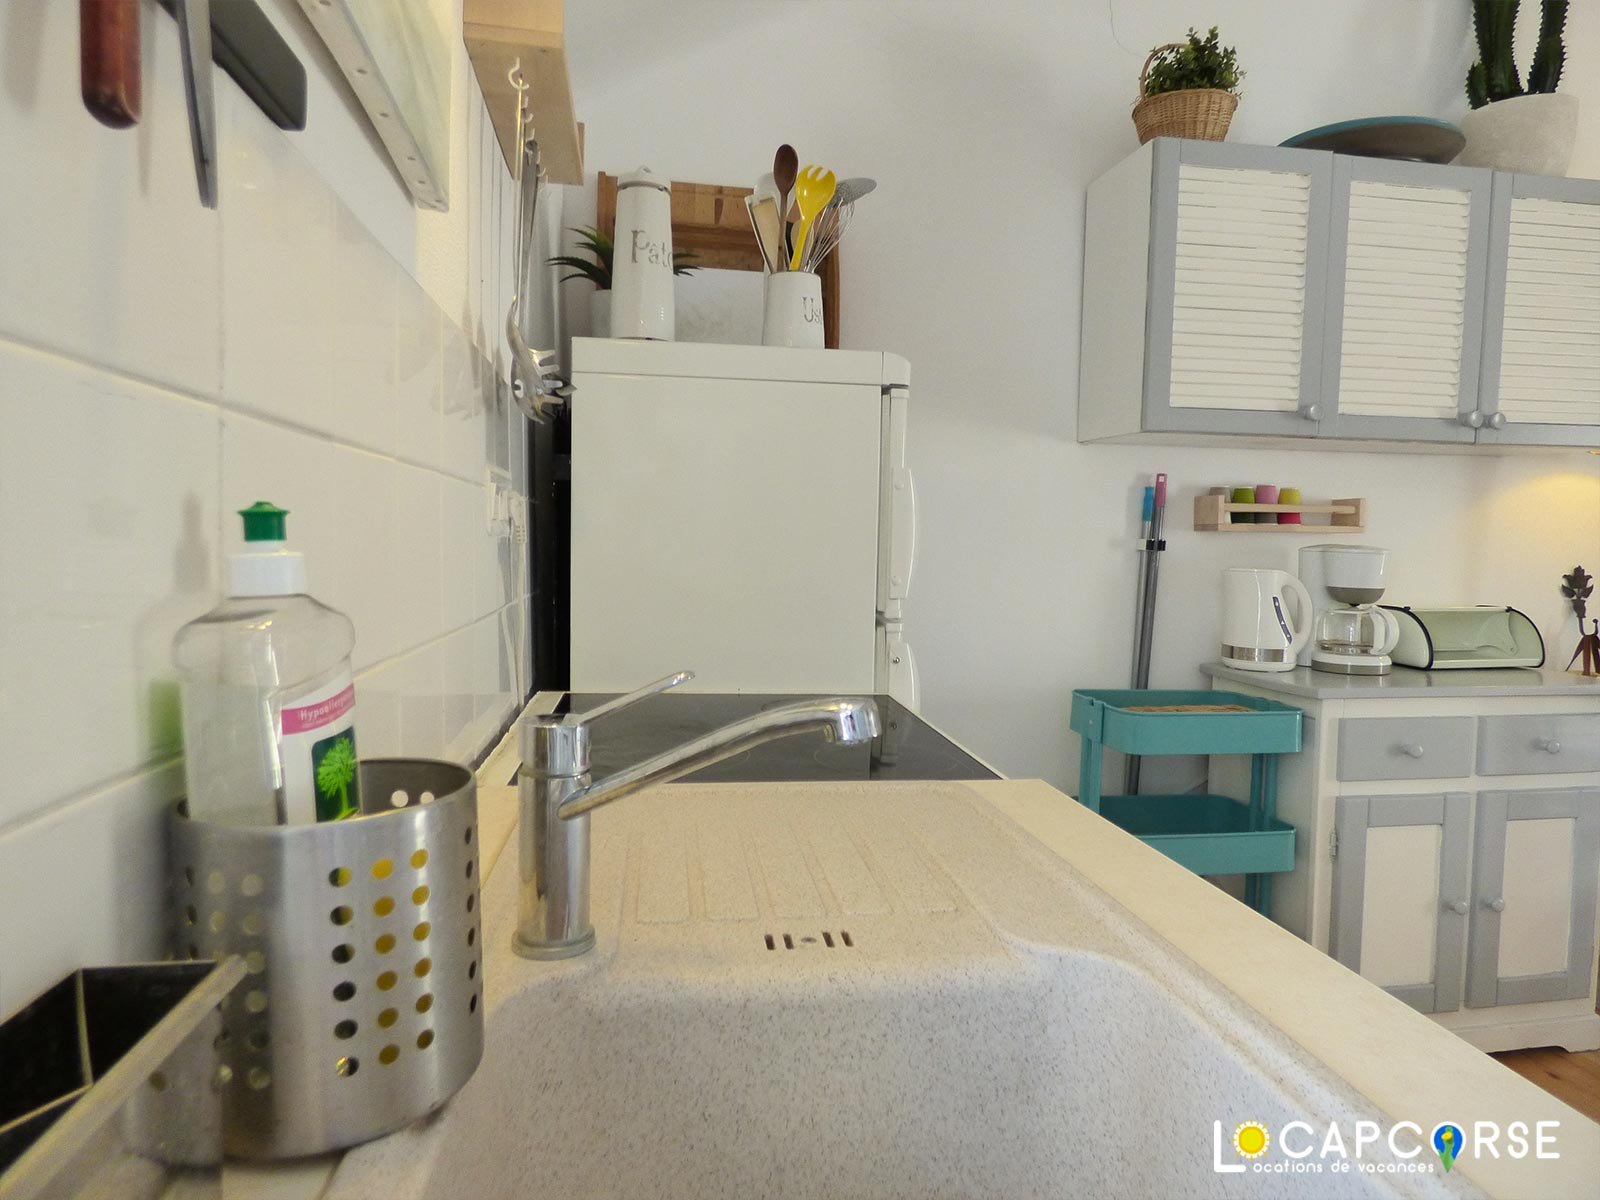 Locapcorse - Holiday rentals in Northern Corsica Small kitchen very practical